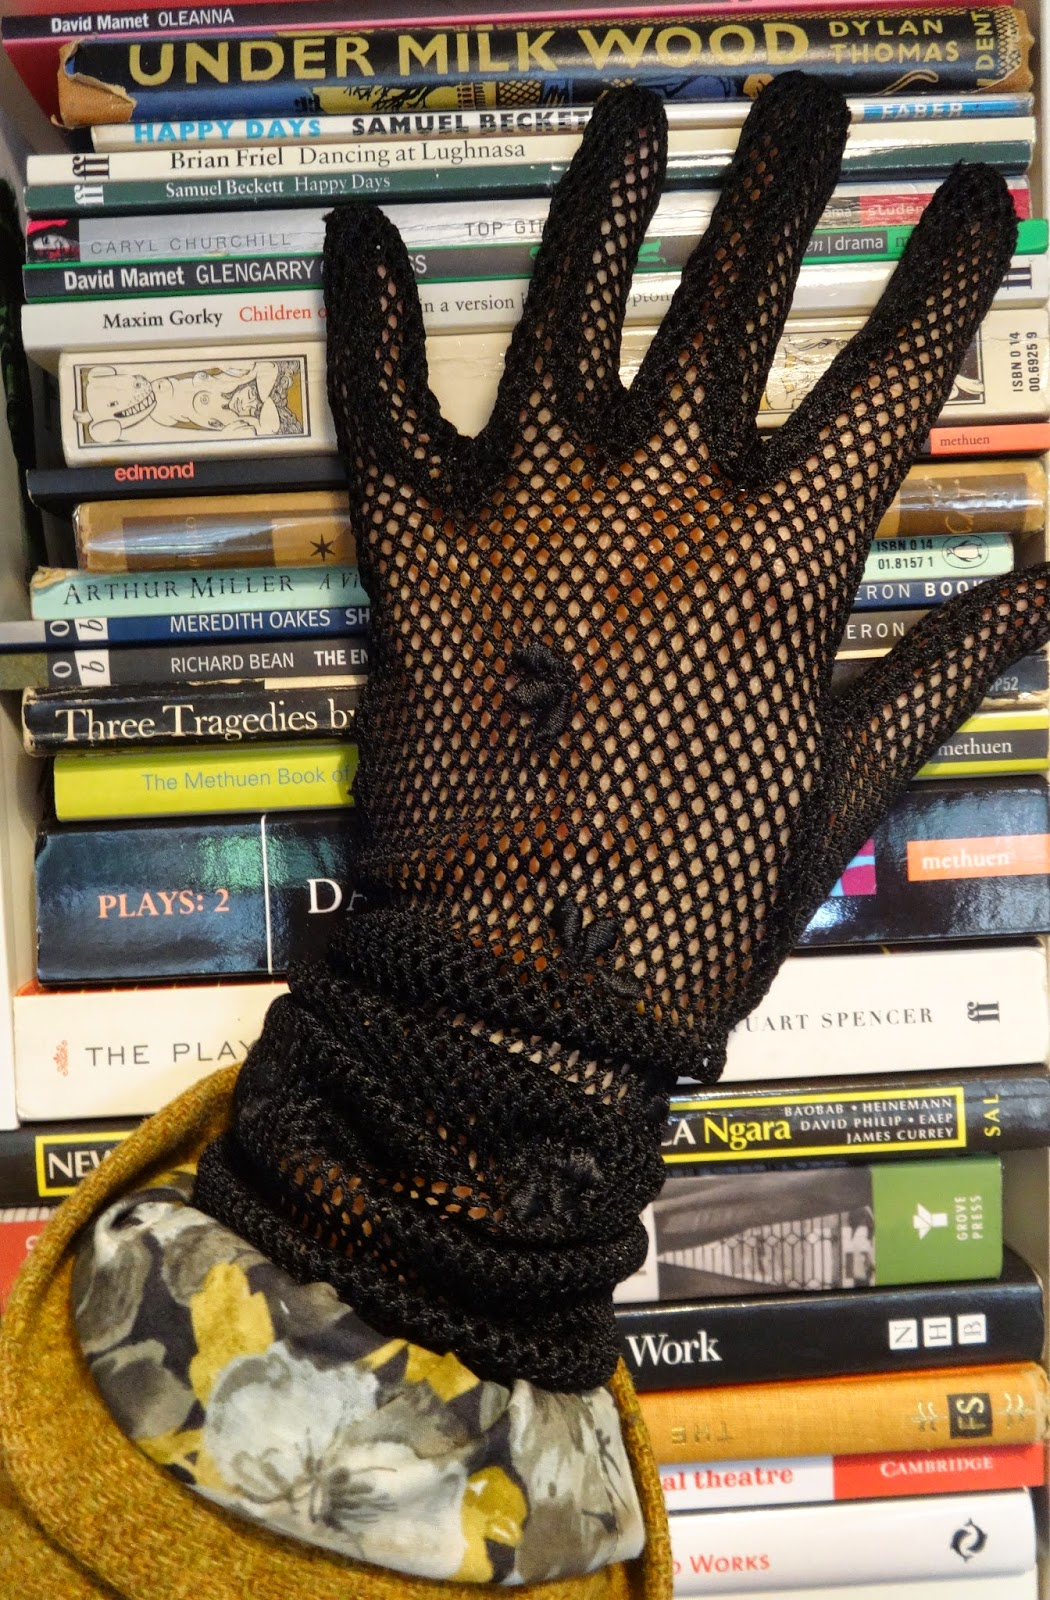 The dress agency - I Found These Beautifully Made Black Fishnet Gloves At Vintage Rose 24 Richmond Hill Tw10 This Is A Classic Dress Agency With A Terrific Selection Of